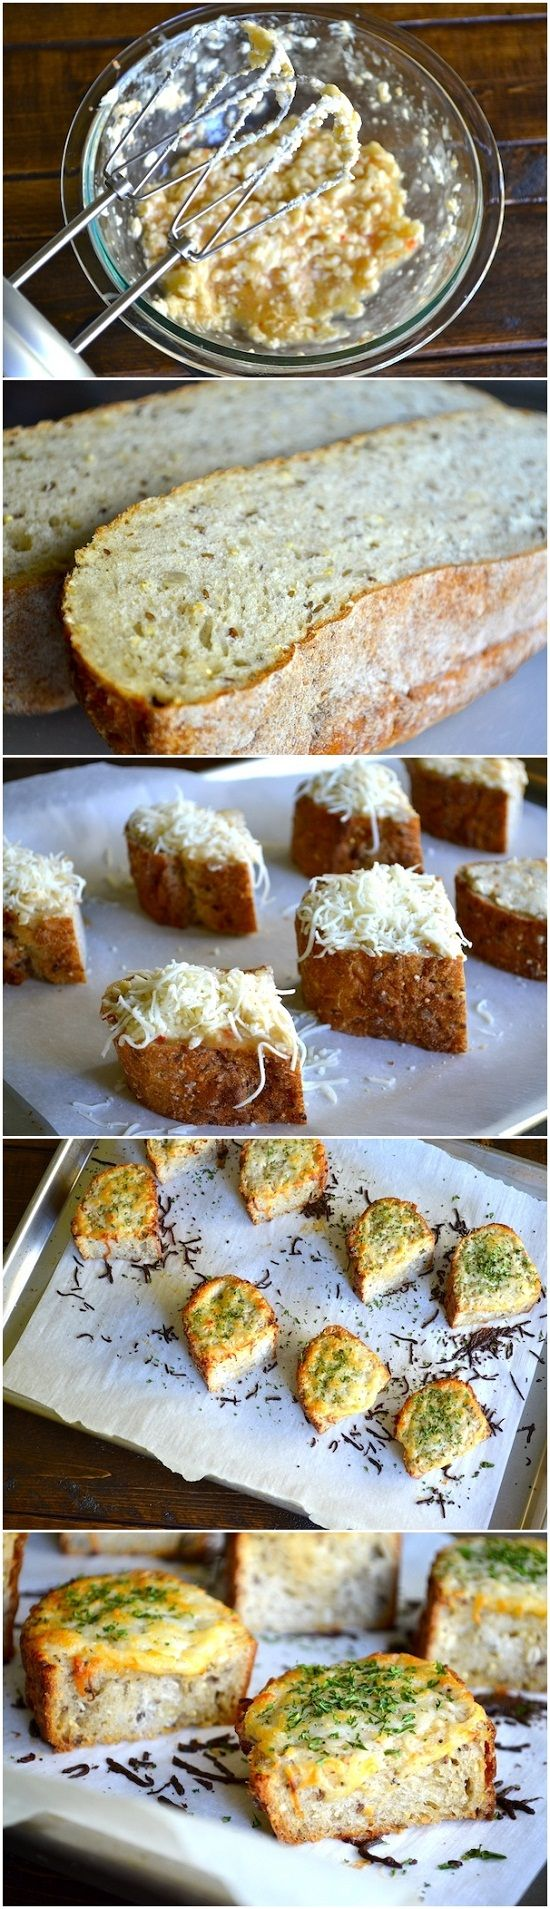 Simple Bubbly Garlic Cheese Bread - Recipe Simple Will be trying this ...